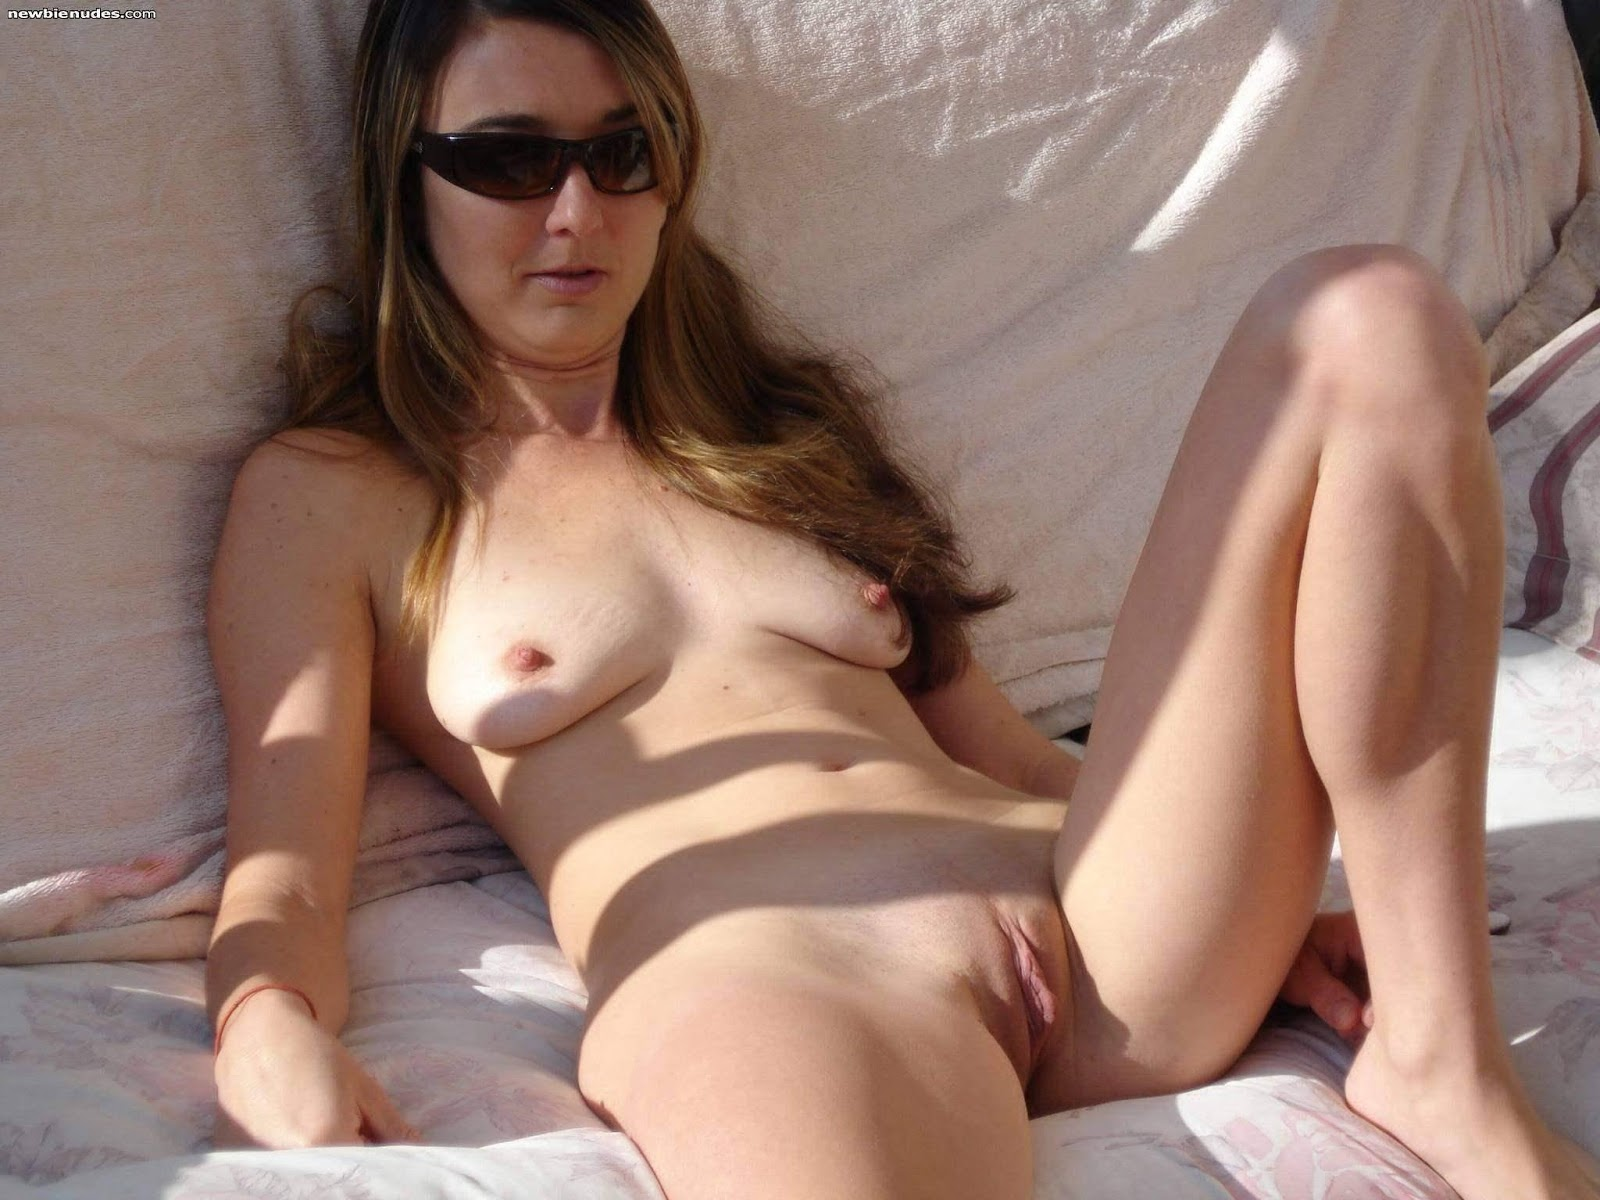 sexy real women nude